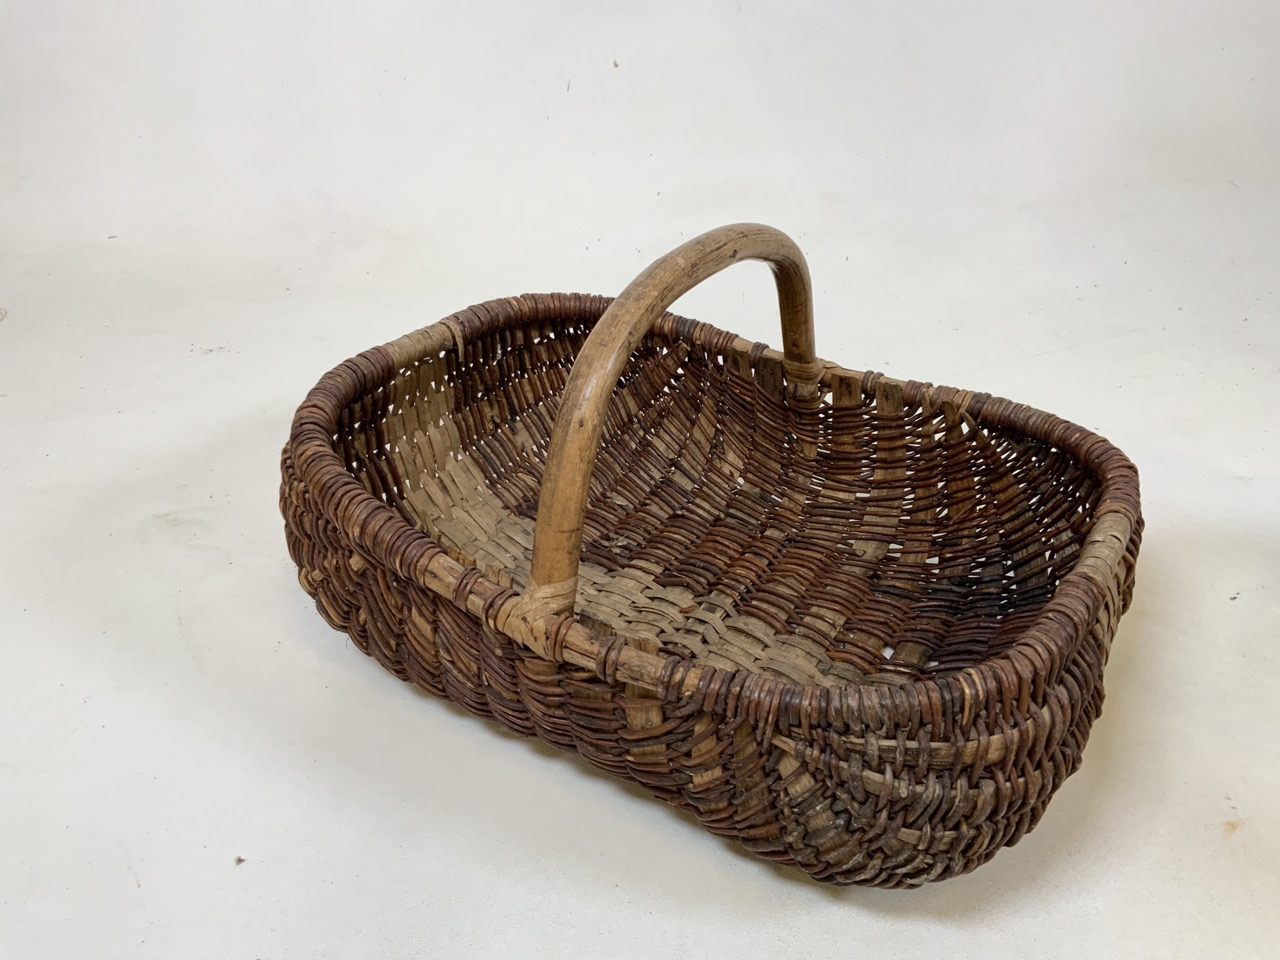 Two vintage french baskets together with a wooden sieve .Sieve W: 27cm x H: 13cm. - Image 2 of 4